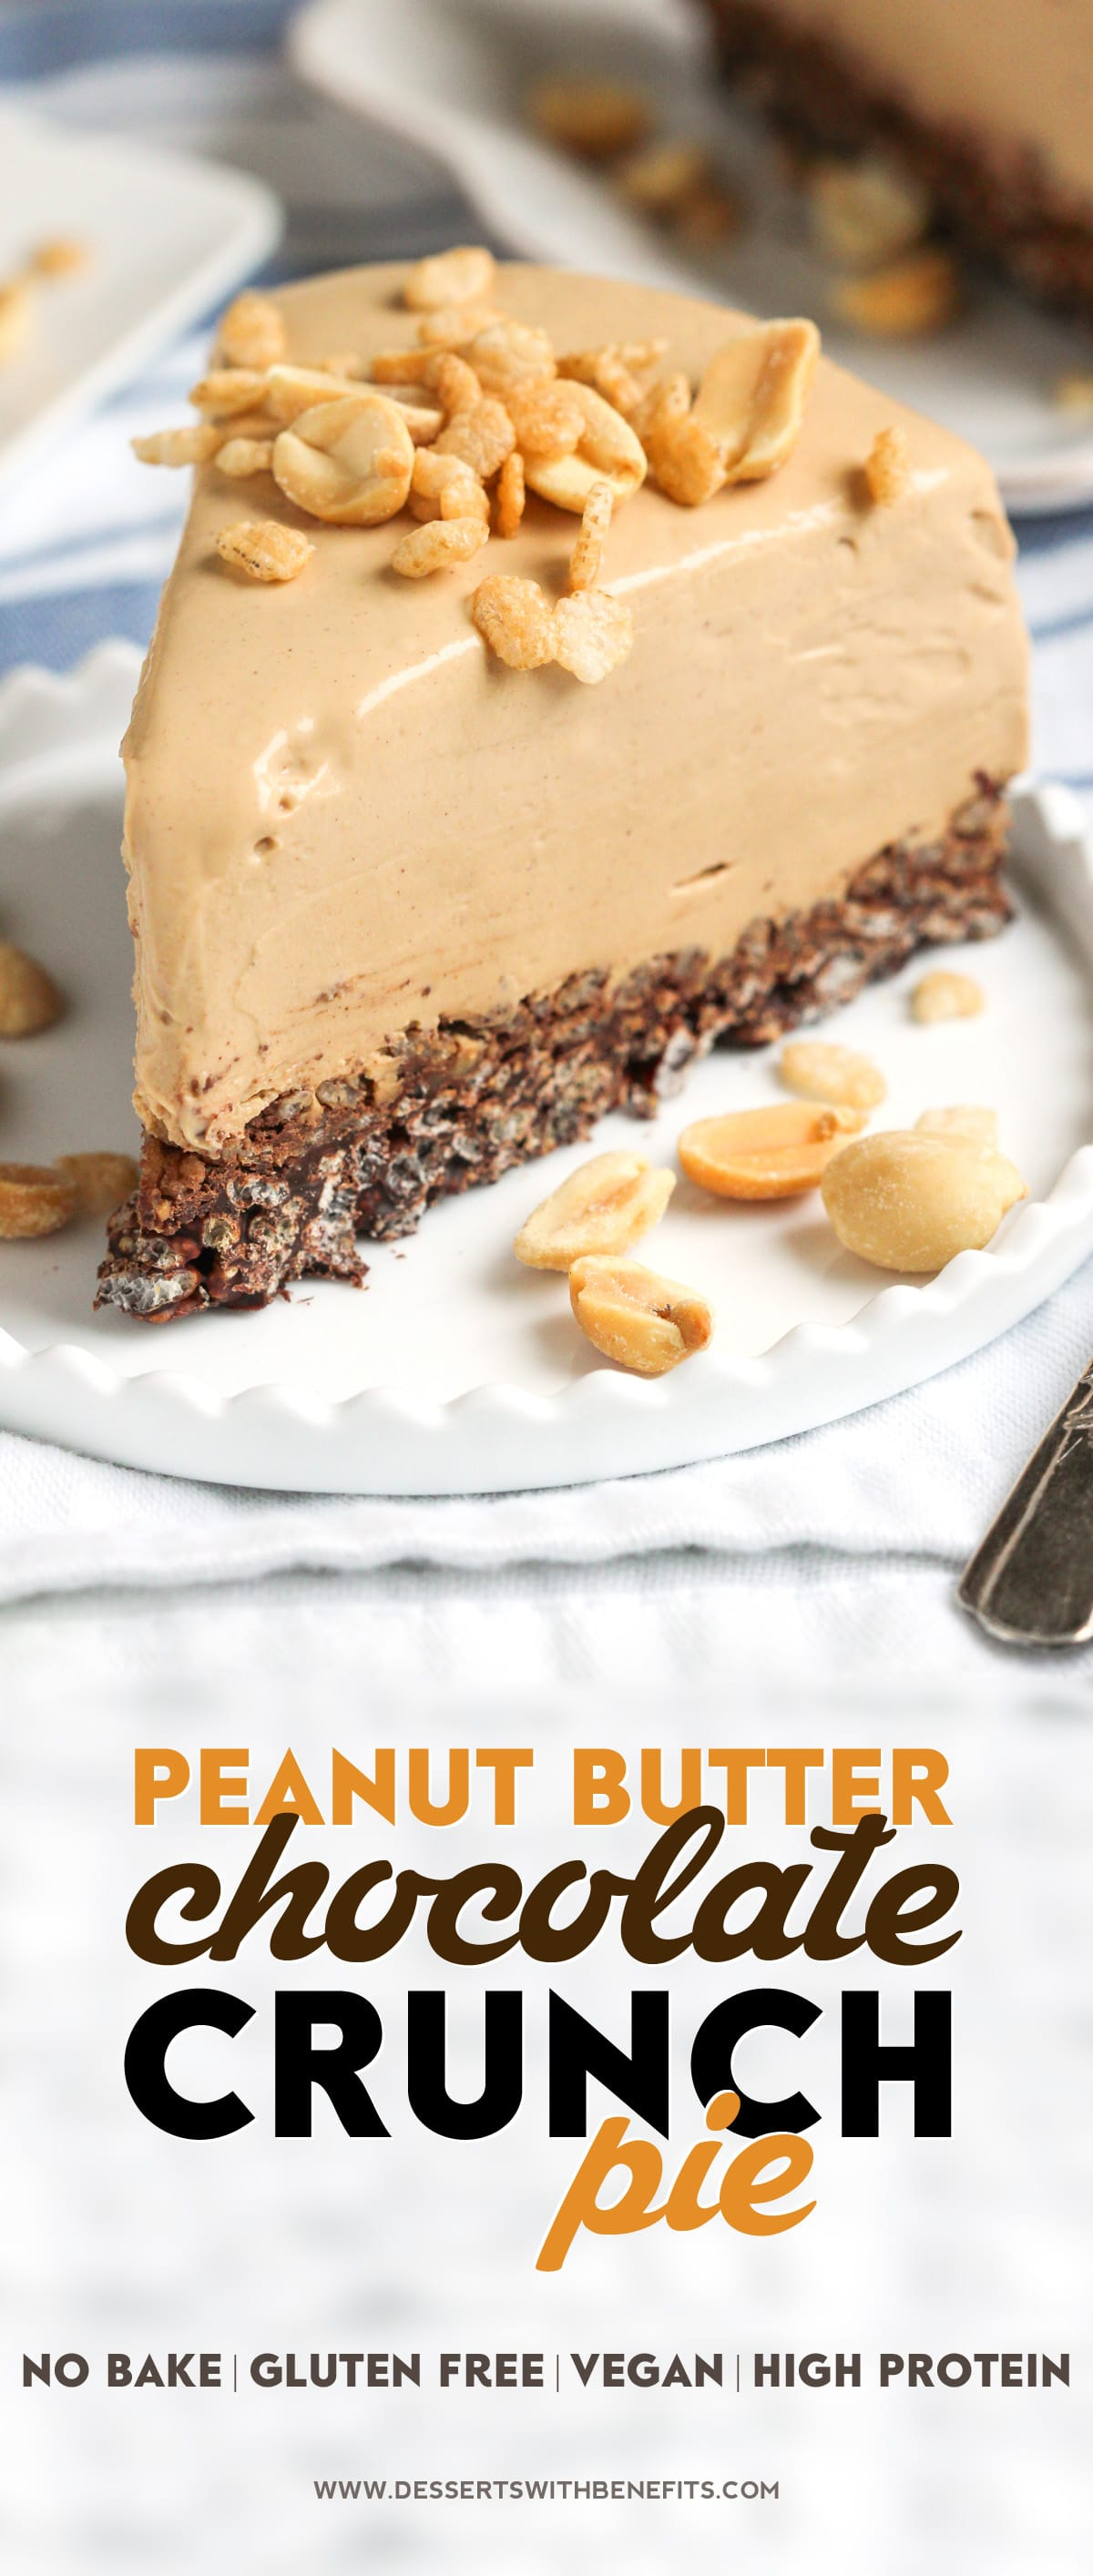 Healthy Peanut Butter Chocolate Crunch Pie (no bake, low sugar, high protein, gluten free, dairy free, vegan)